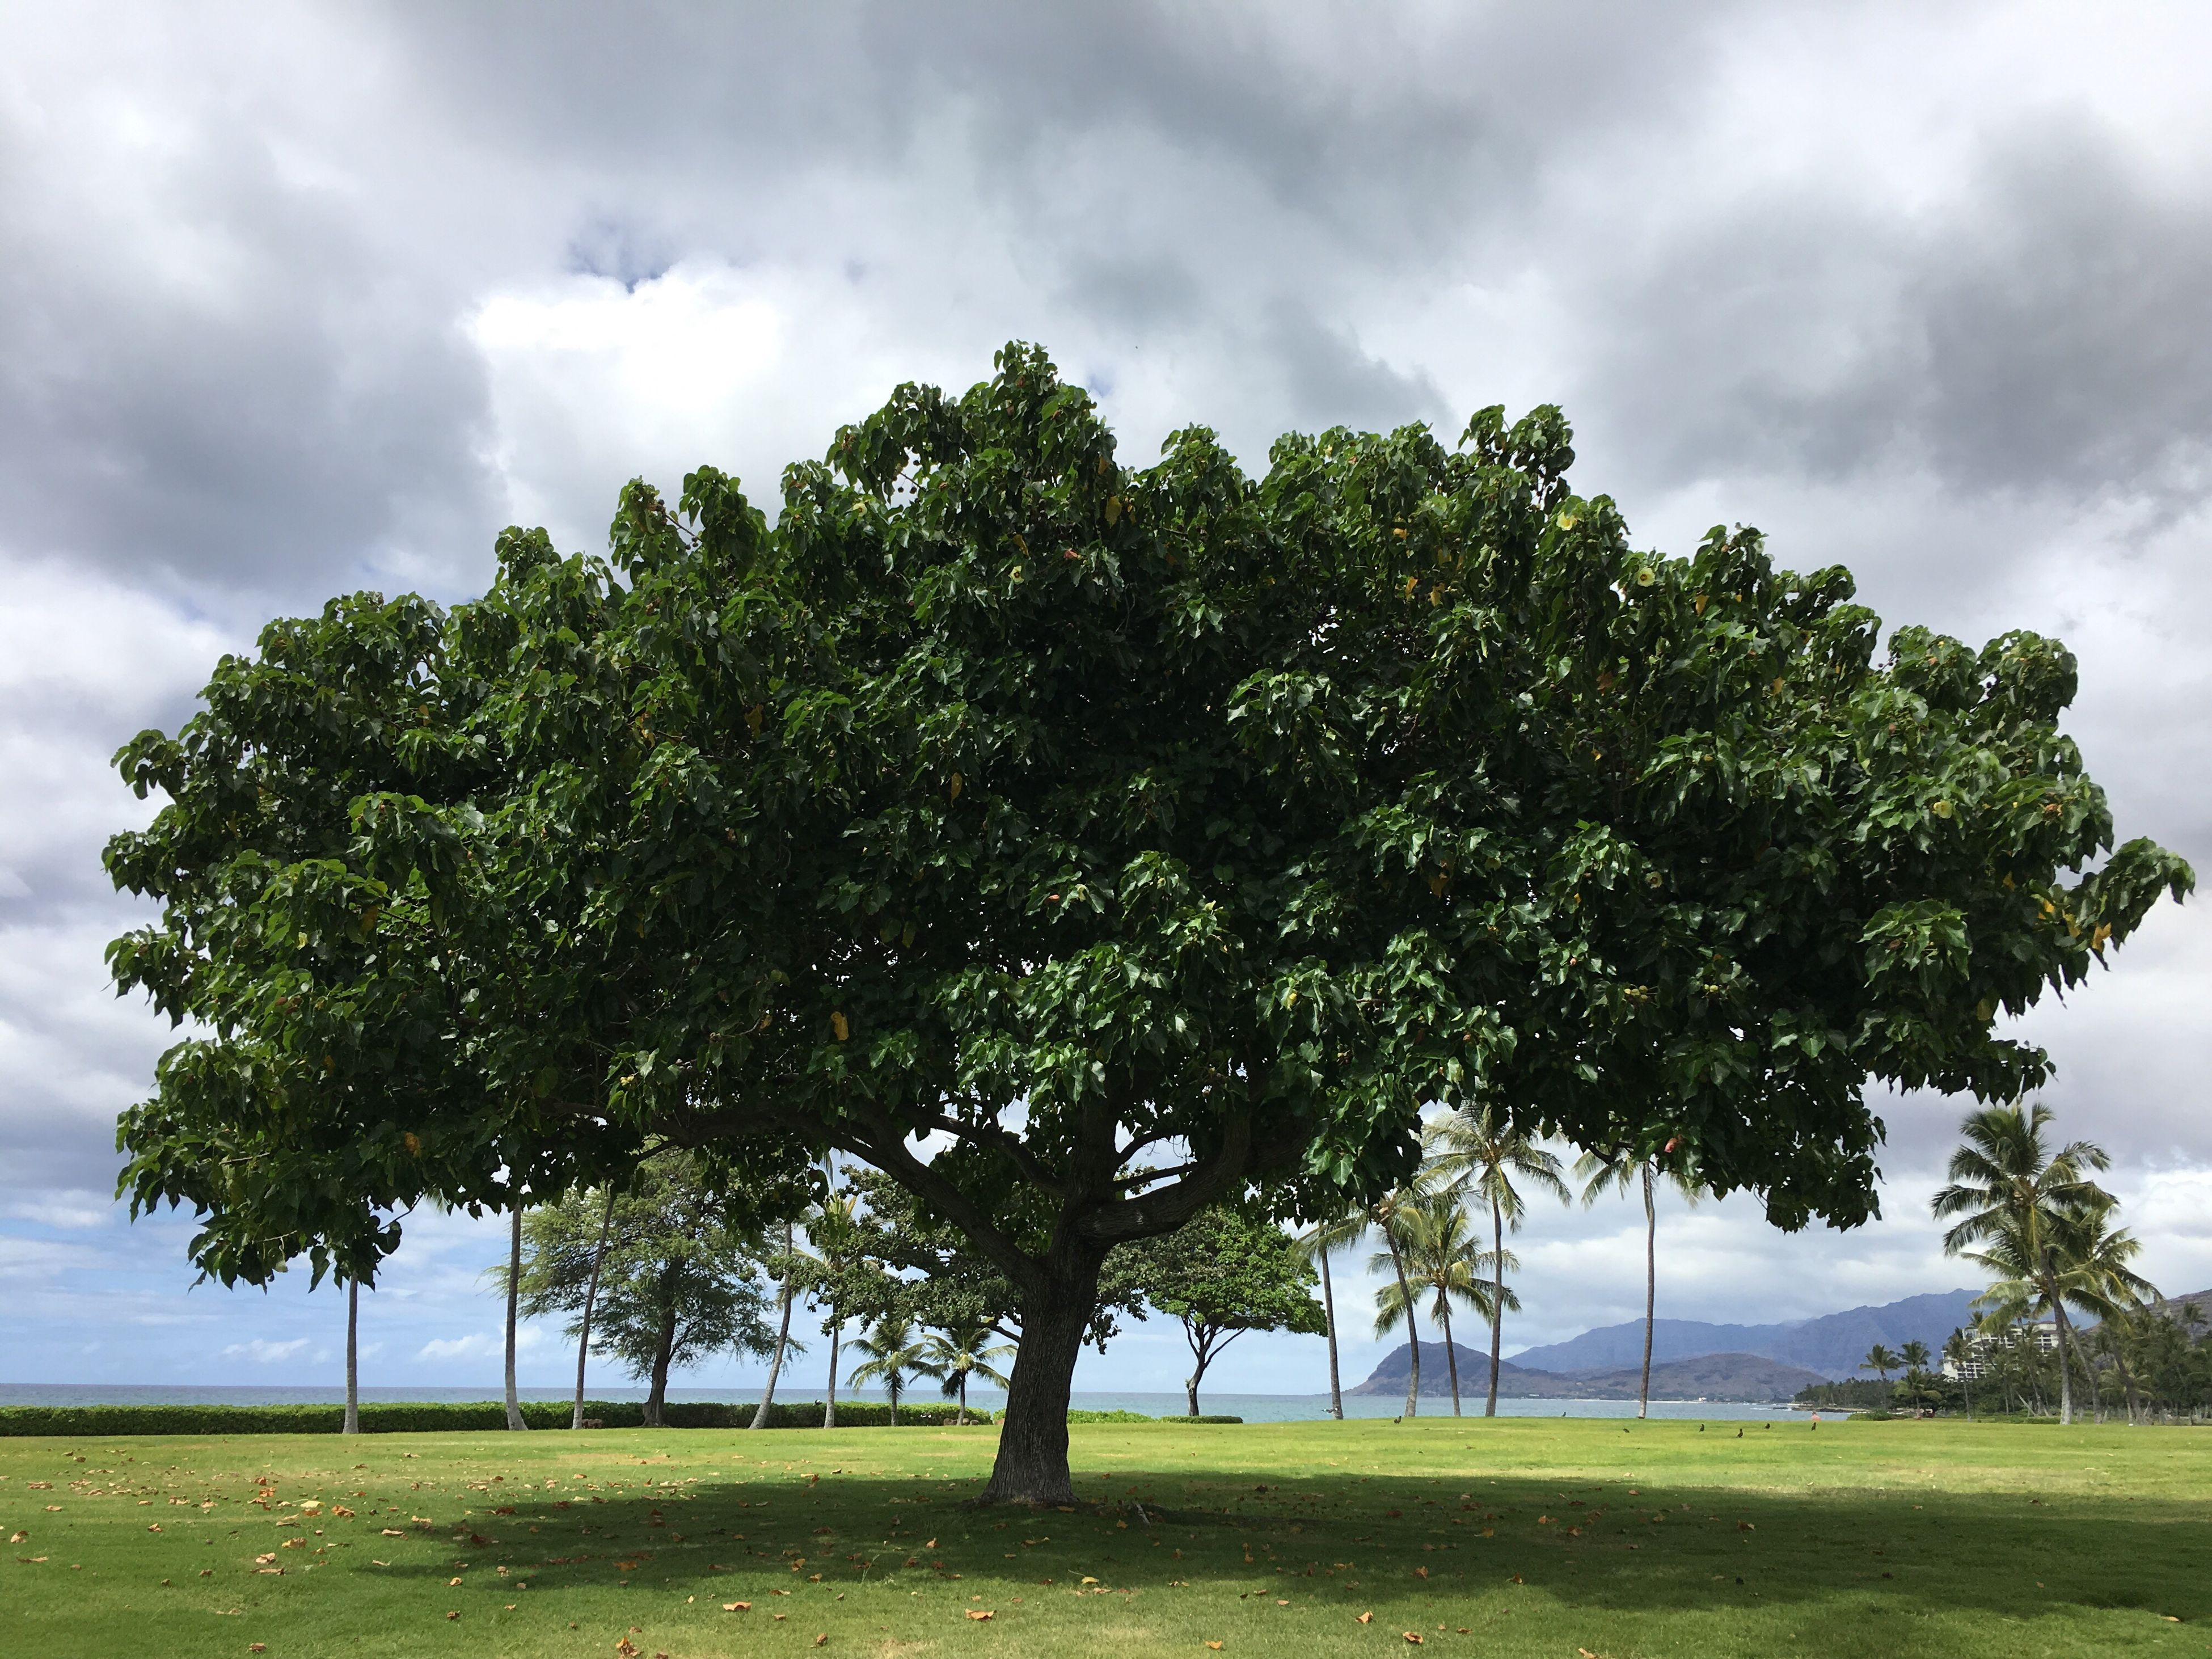 tree, nature, cloud - sky, growth, no people, outdoors, sky, day, beauty in nature, freshness